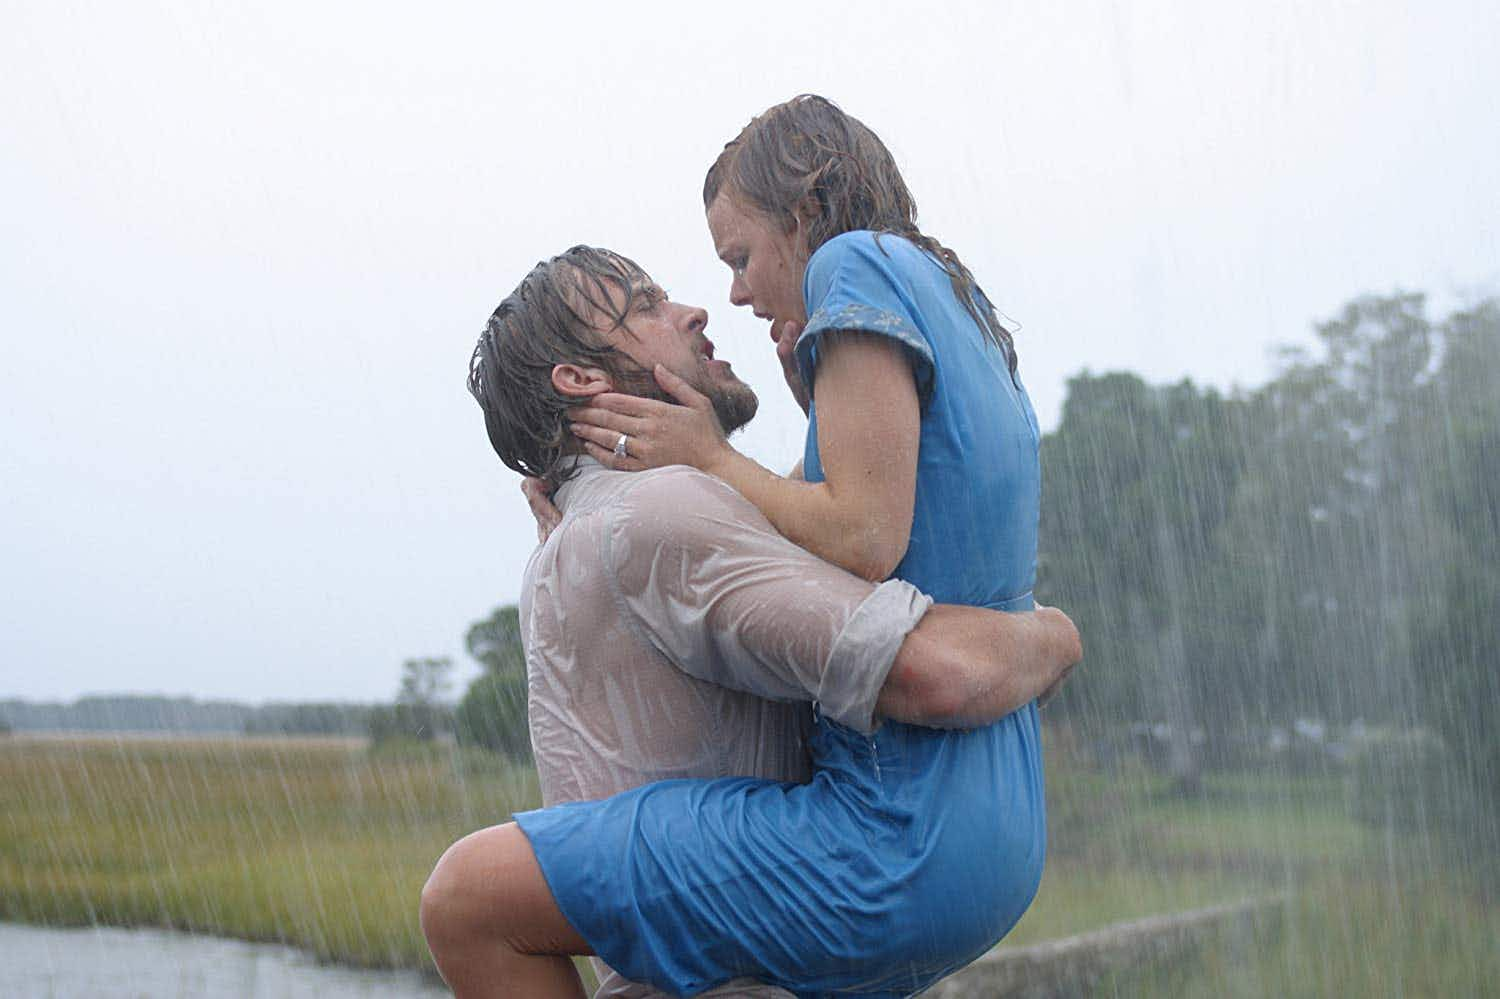 Celebrate The Notebook's 15th anniversary by re-creating the famous scenes